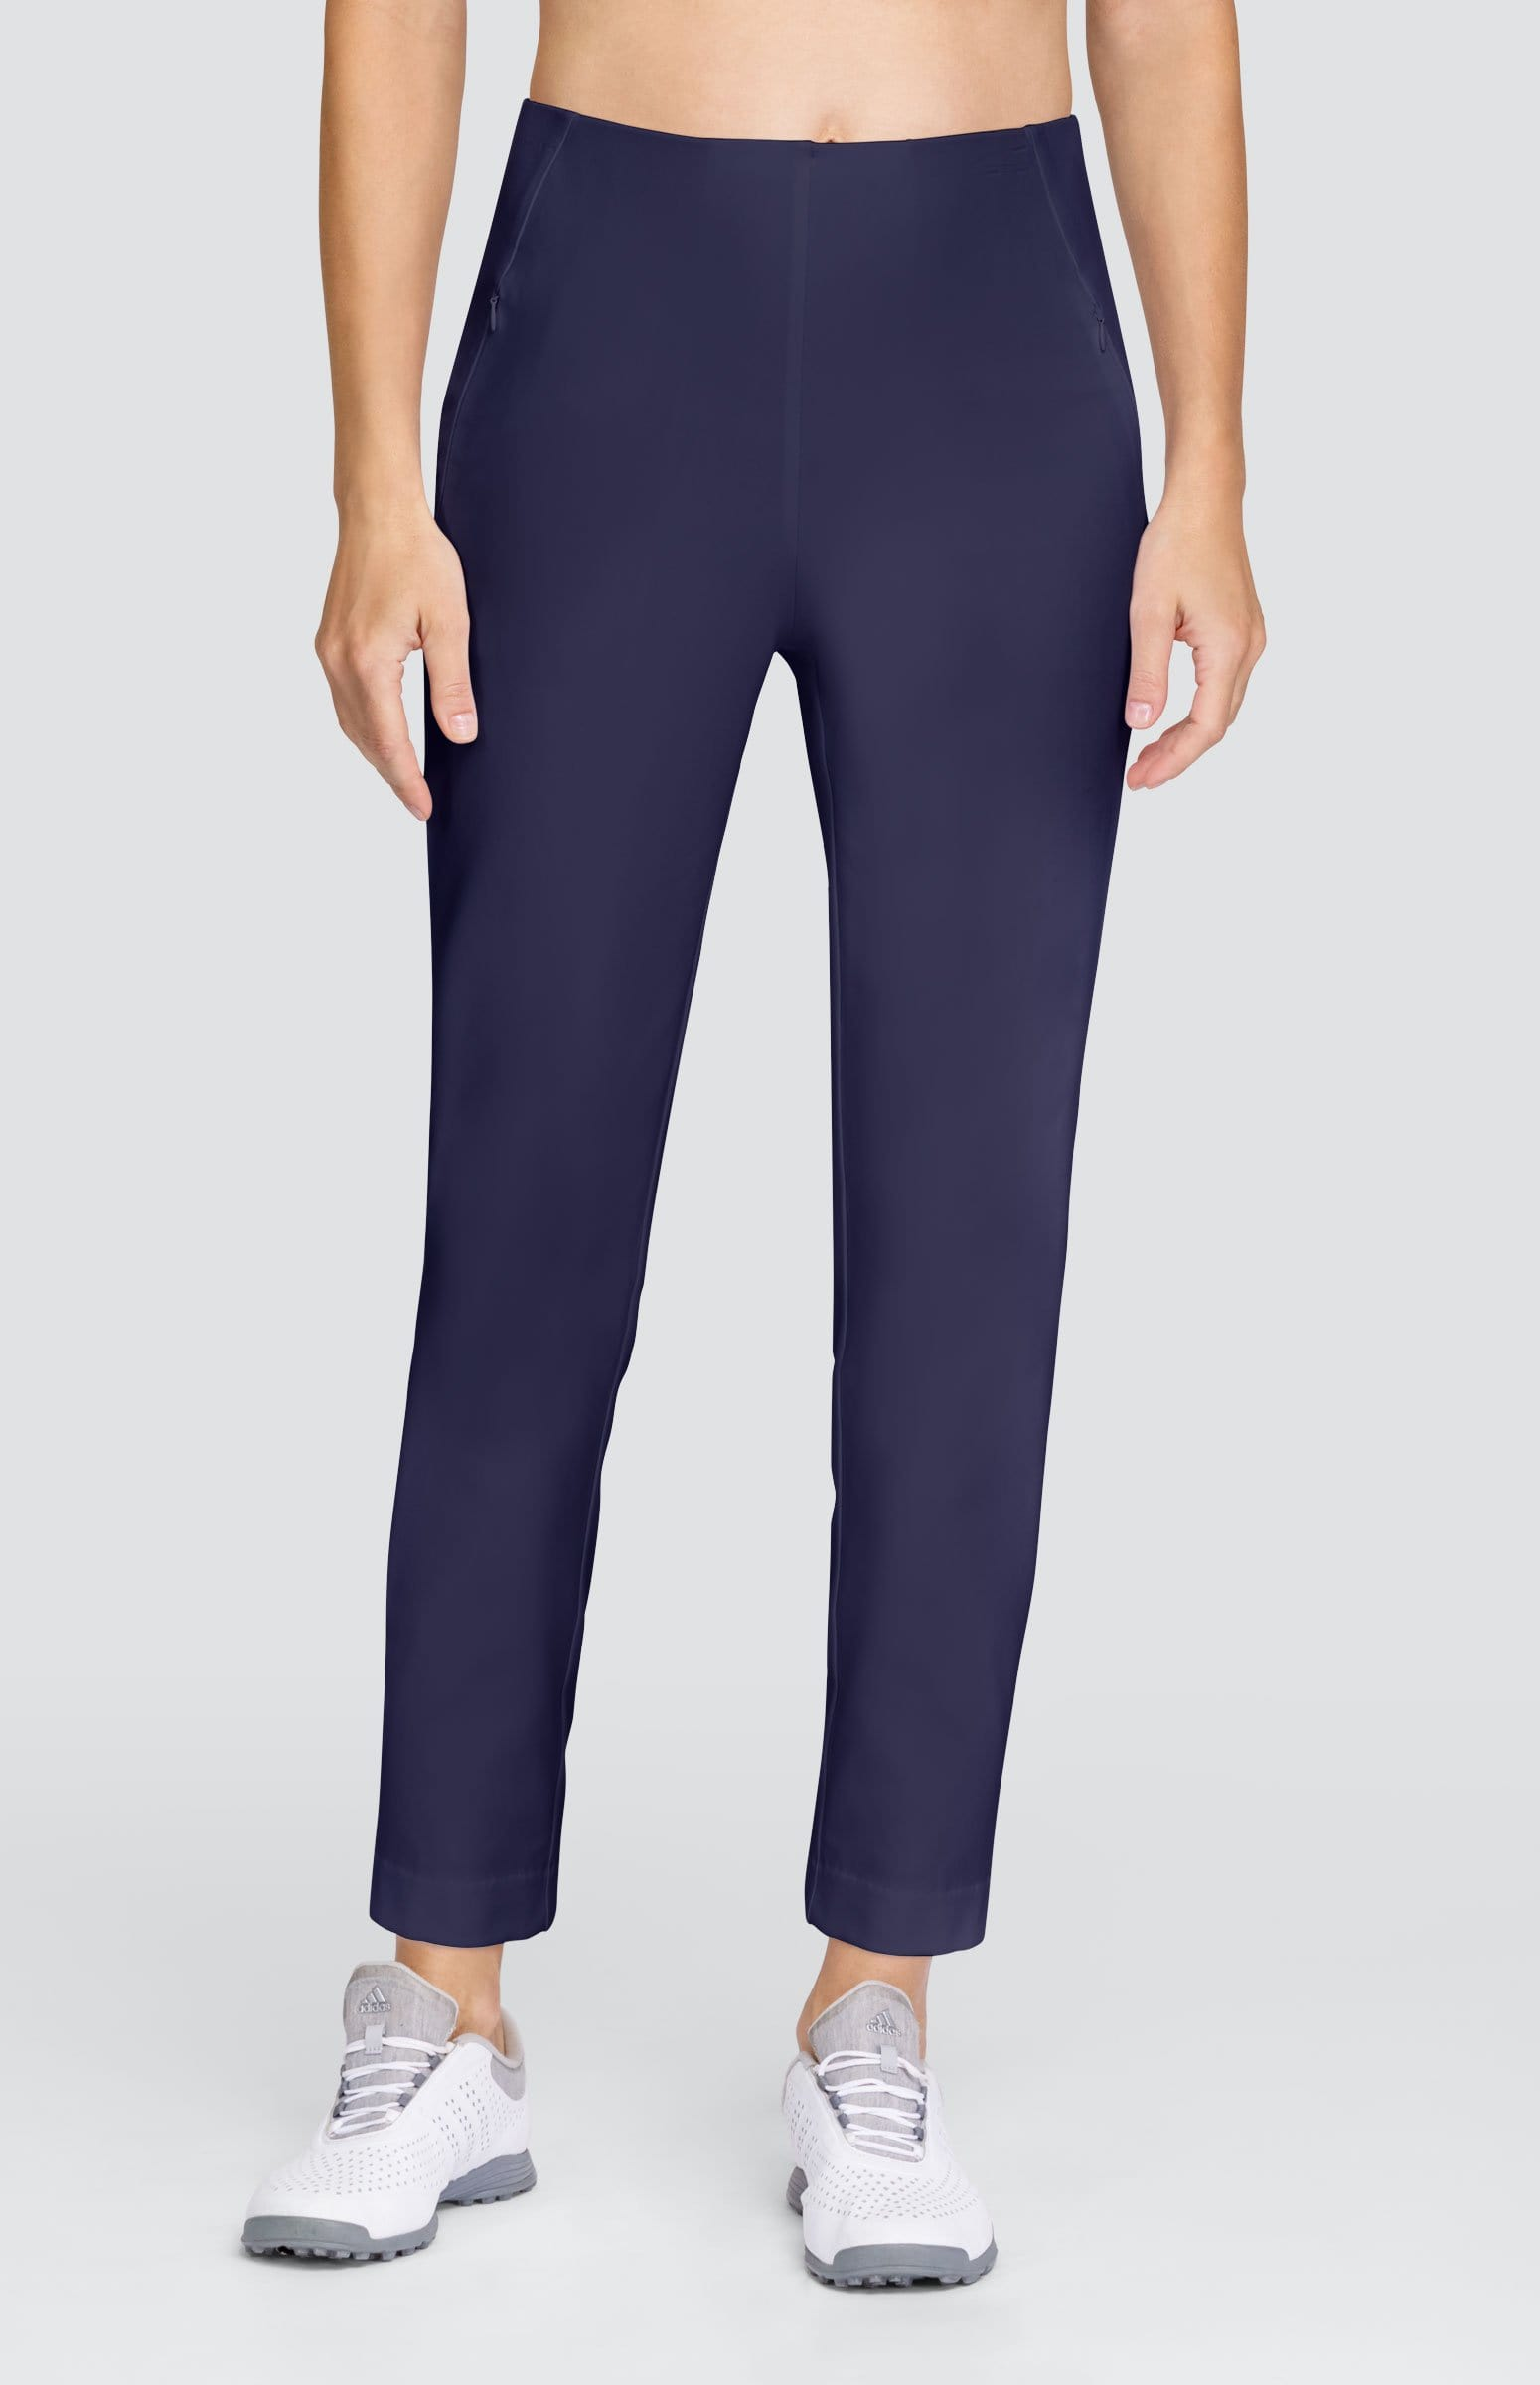 Allure Ankle Pant - Night Navy